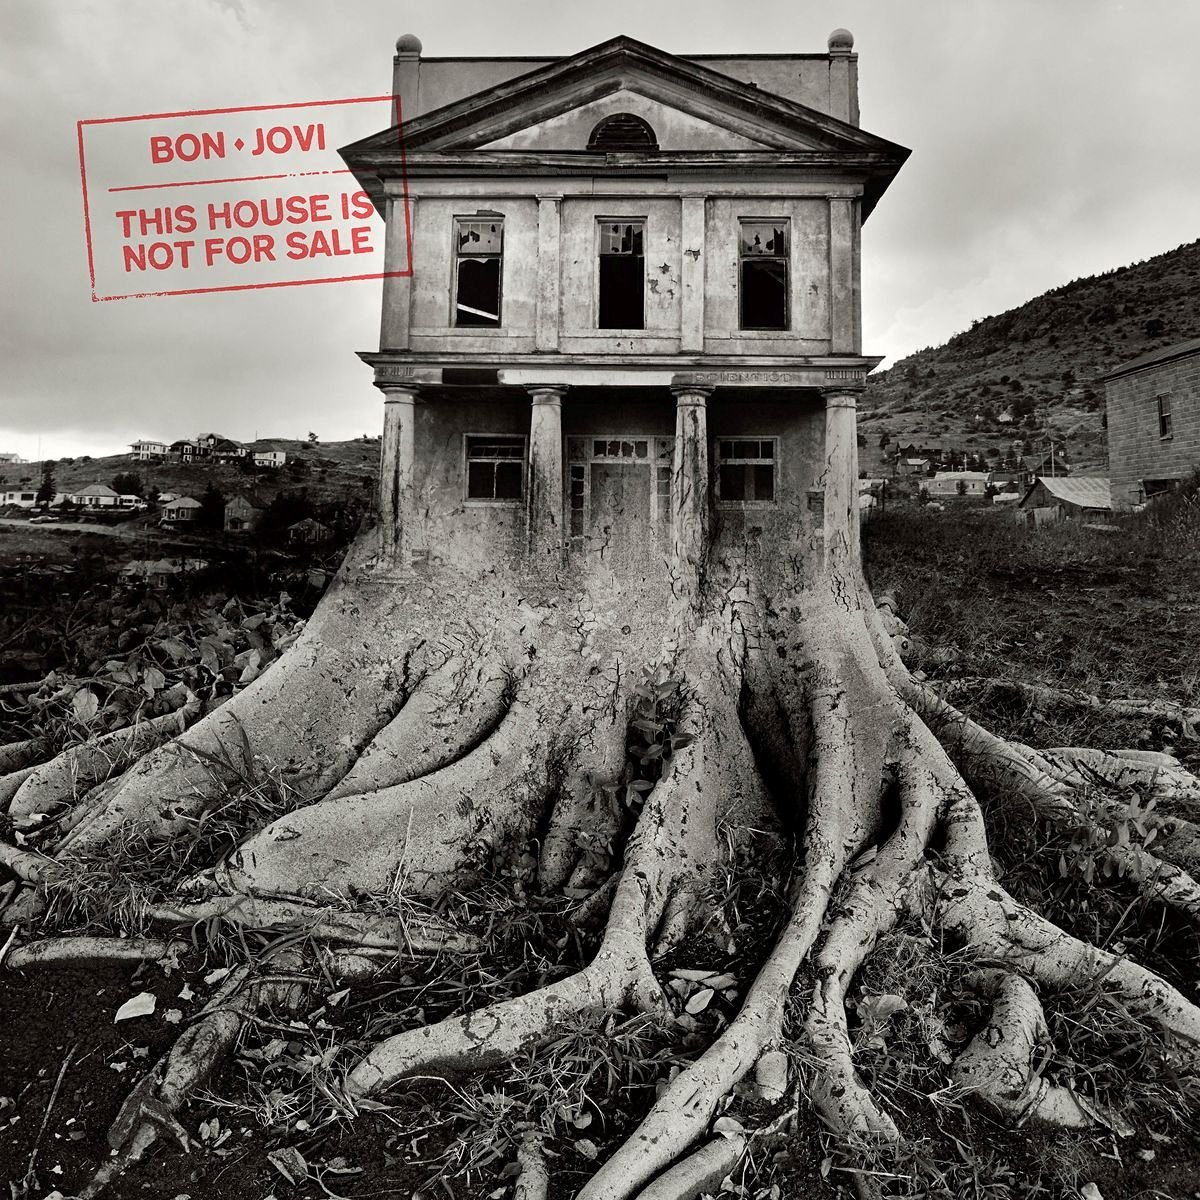 Billboard 200 Grooves: Bon Jovi Takes 'House' to No. 1